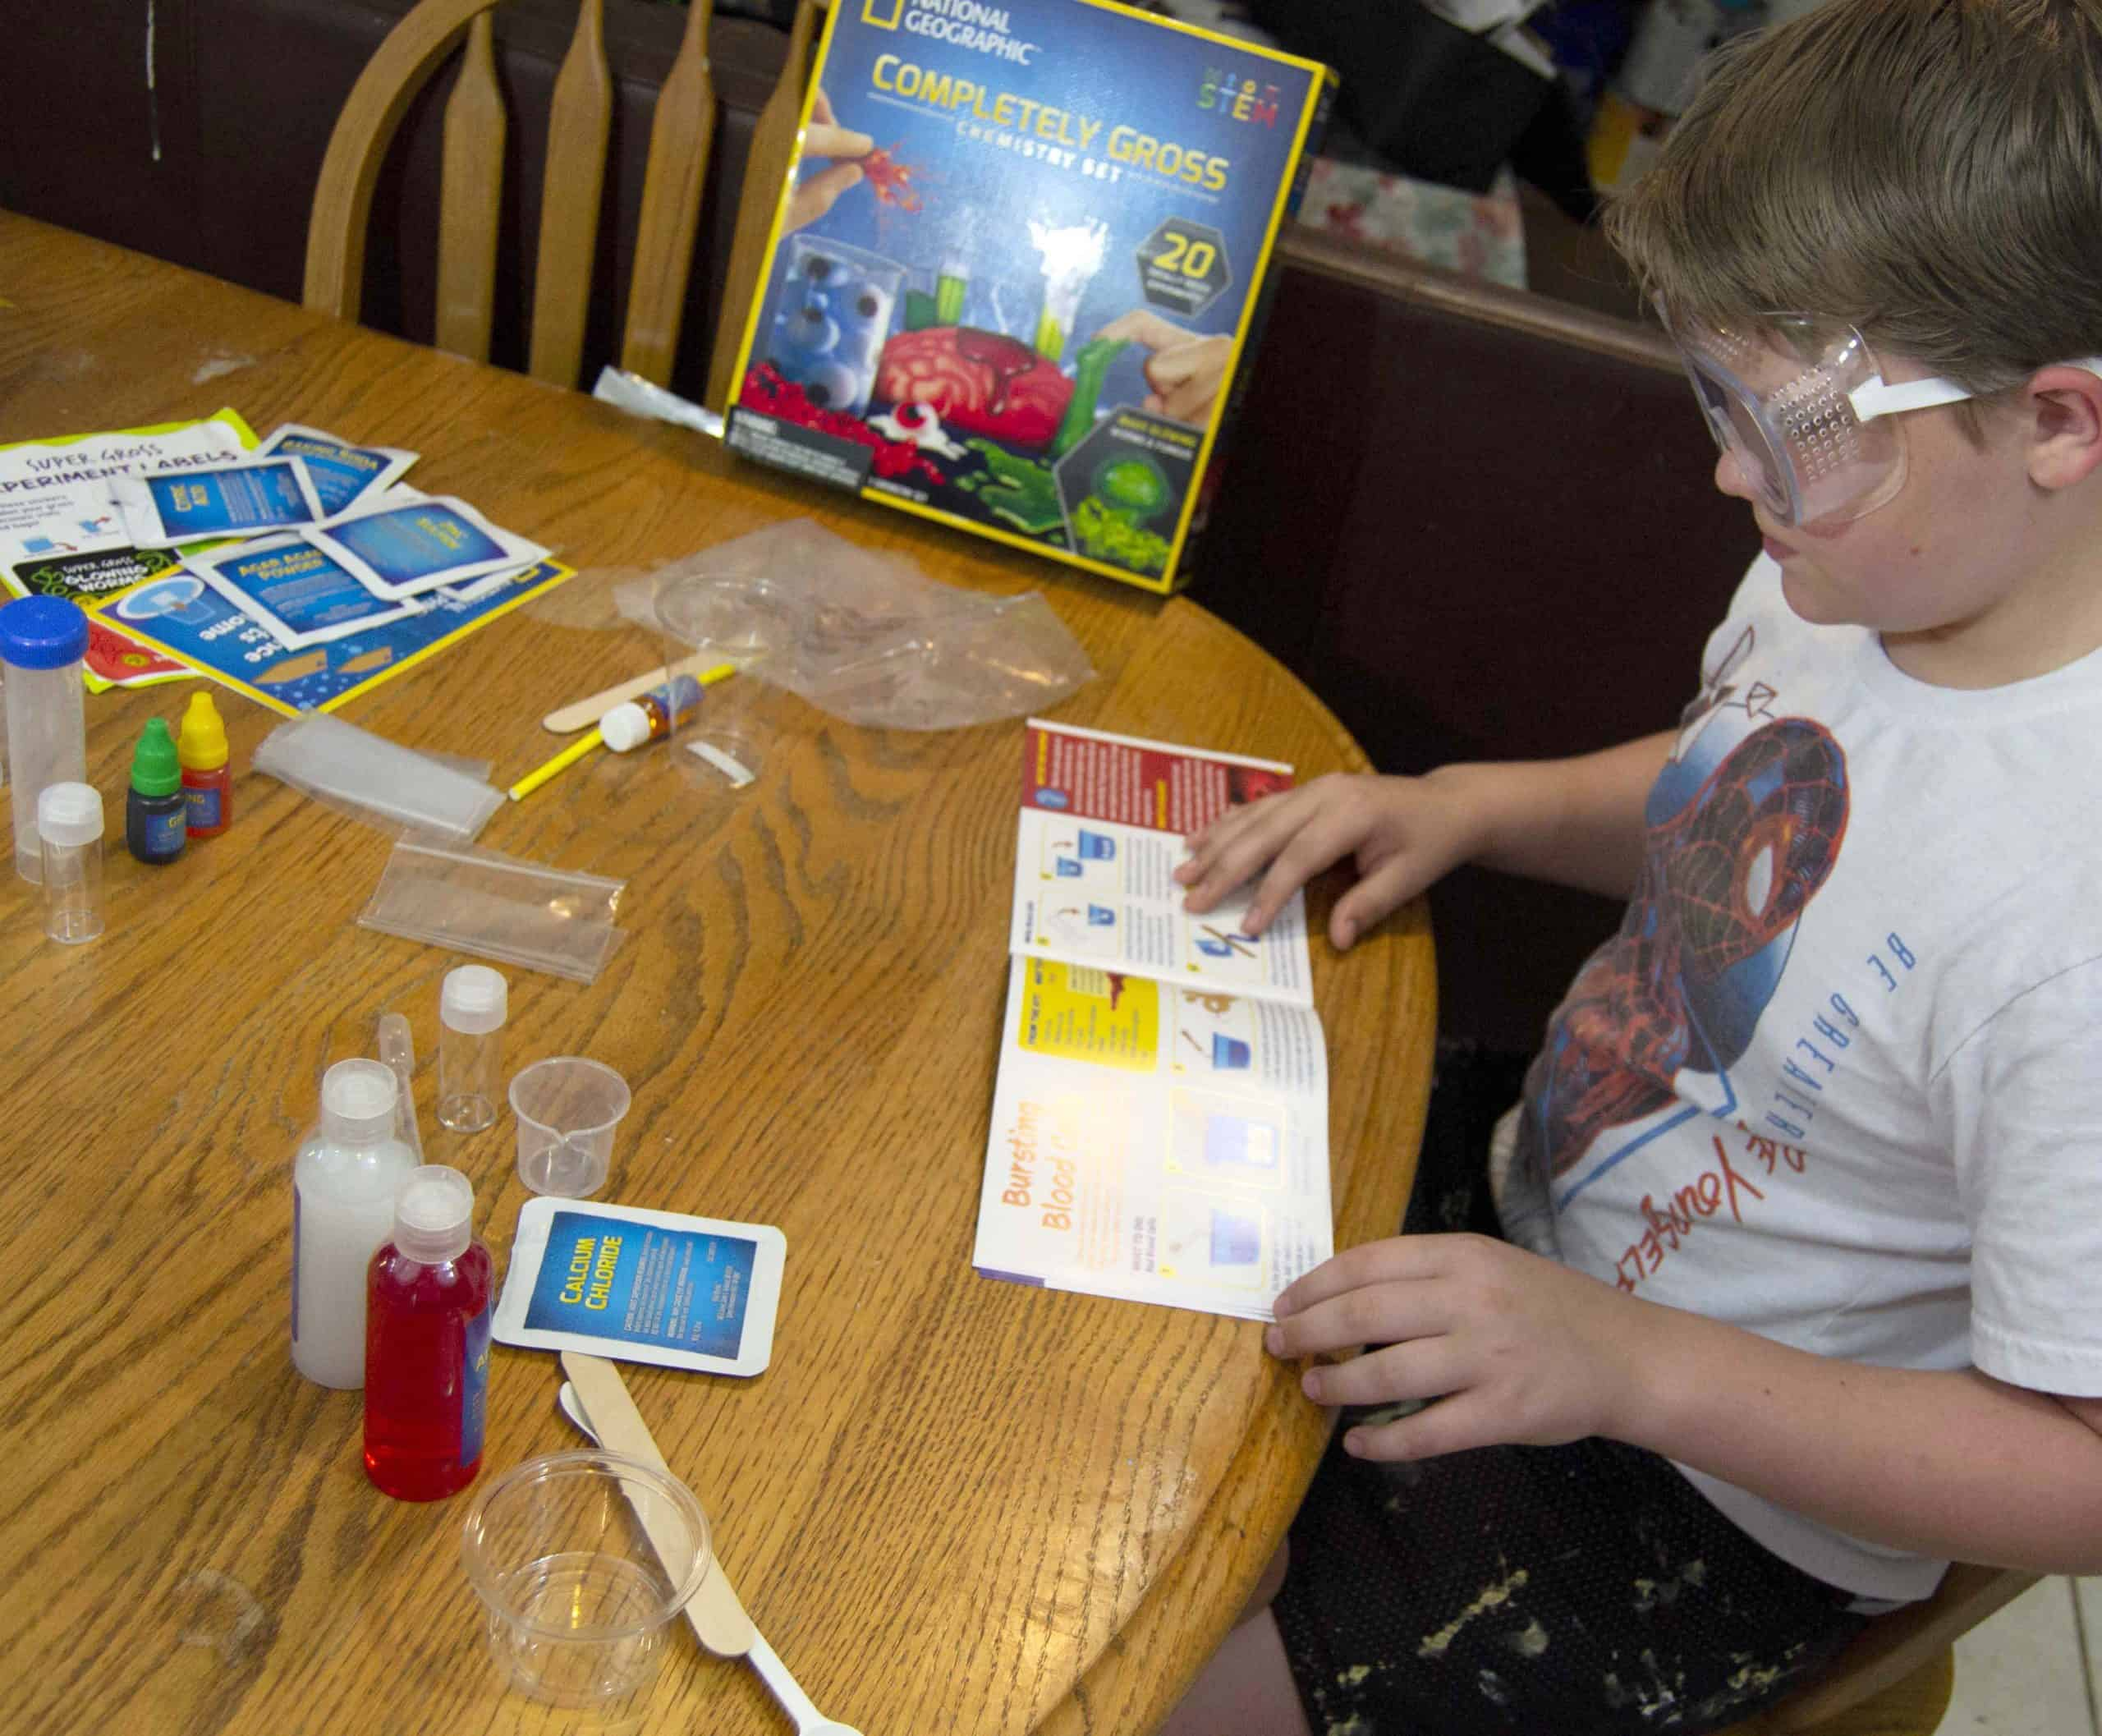 Boy with science kit for blog post on why science kits are worth it